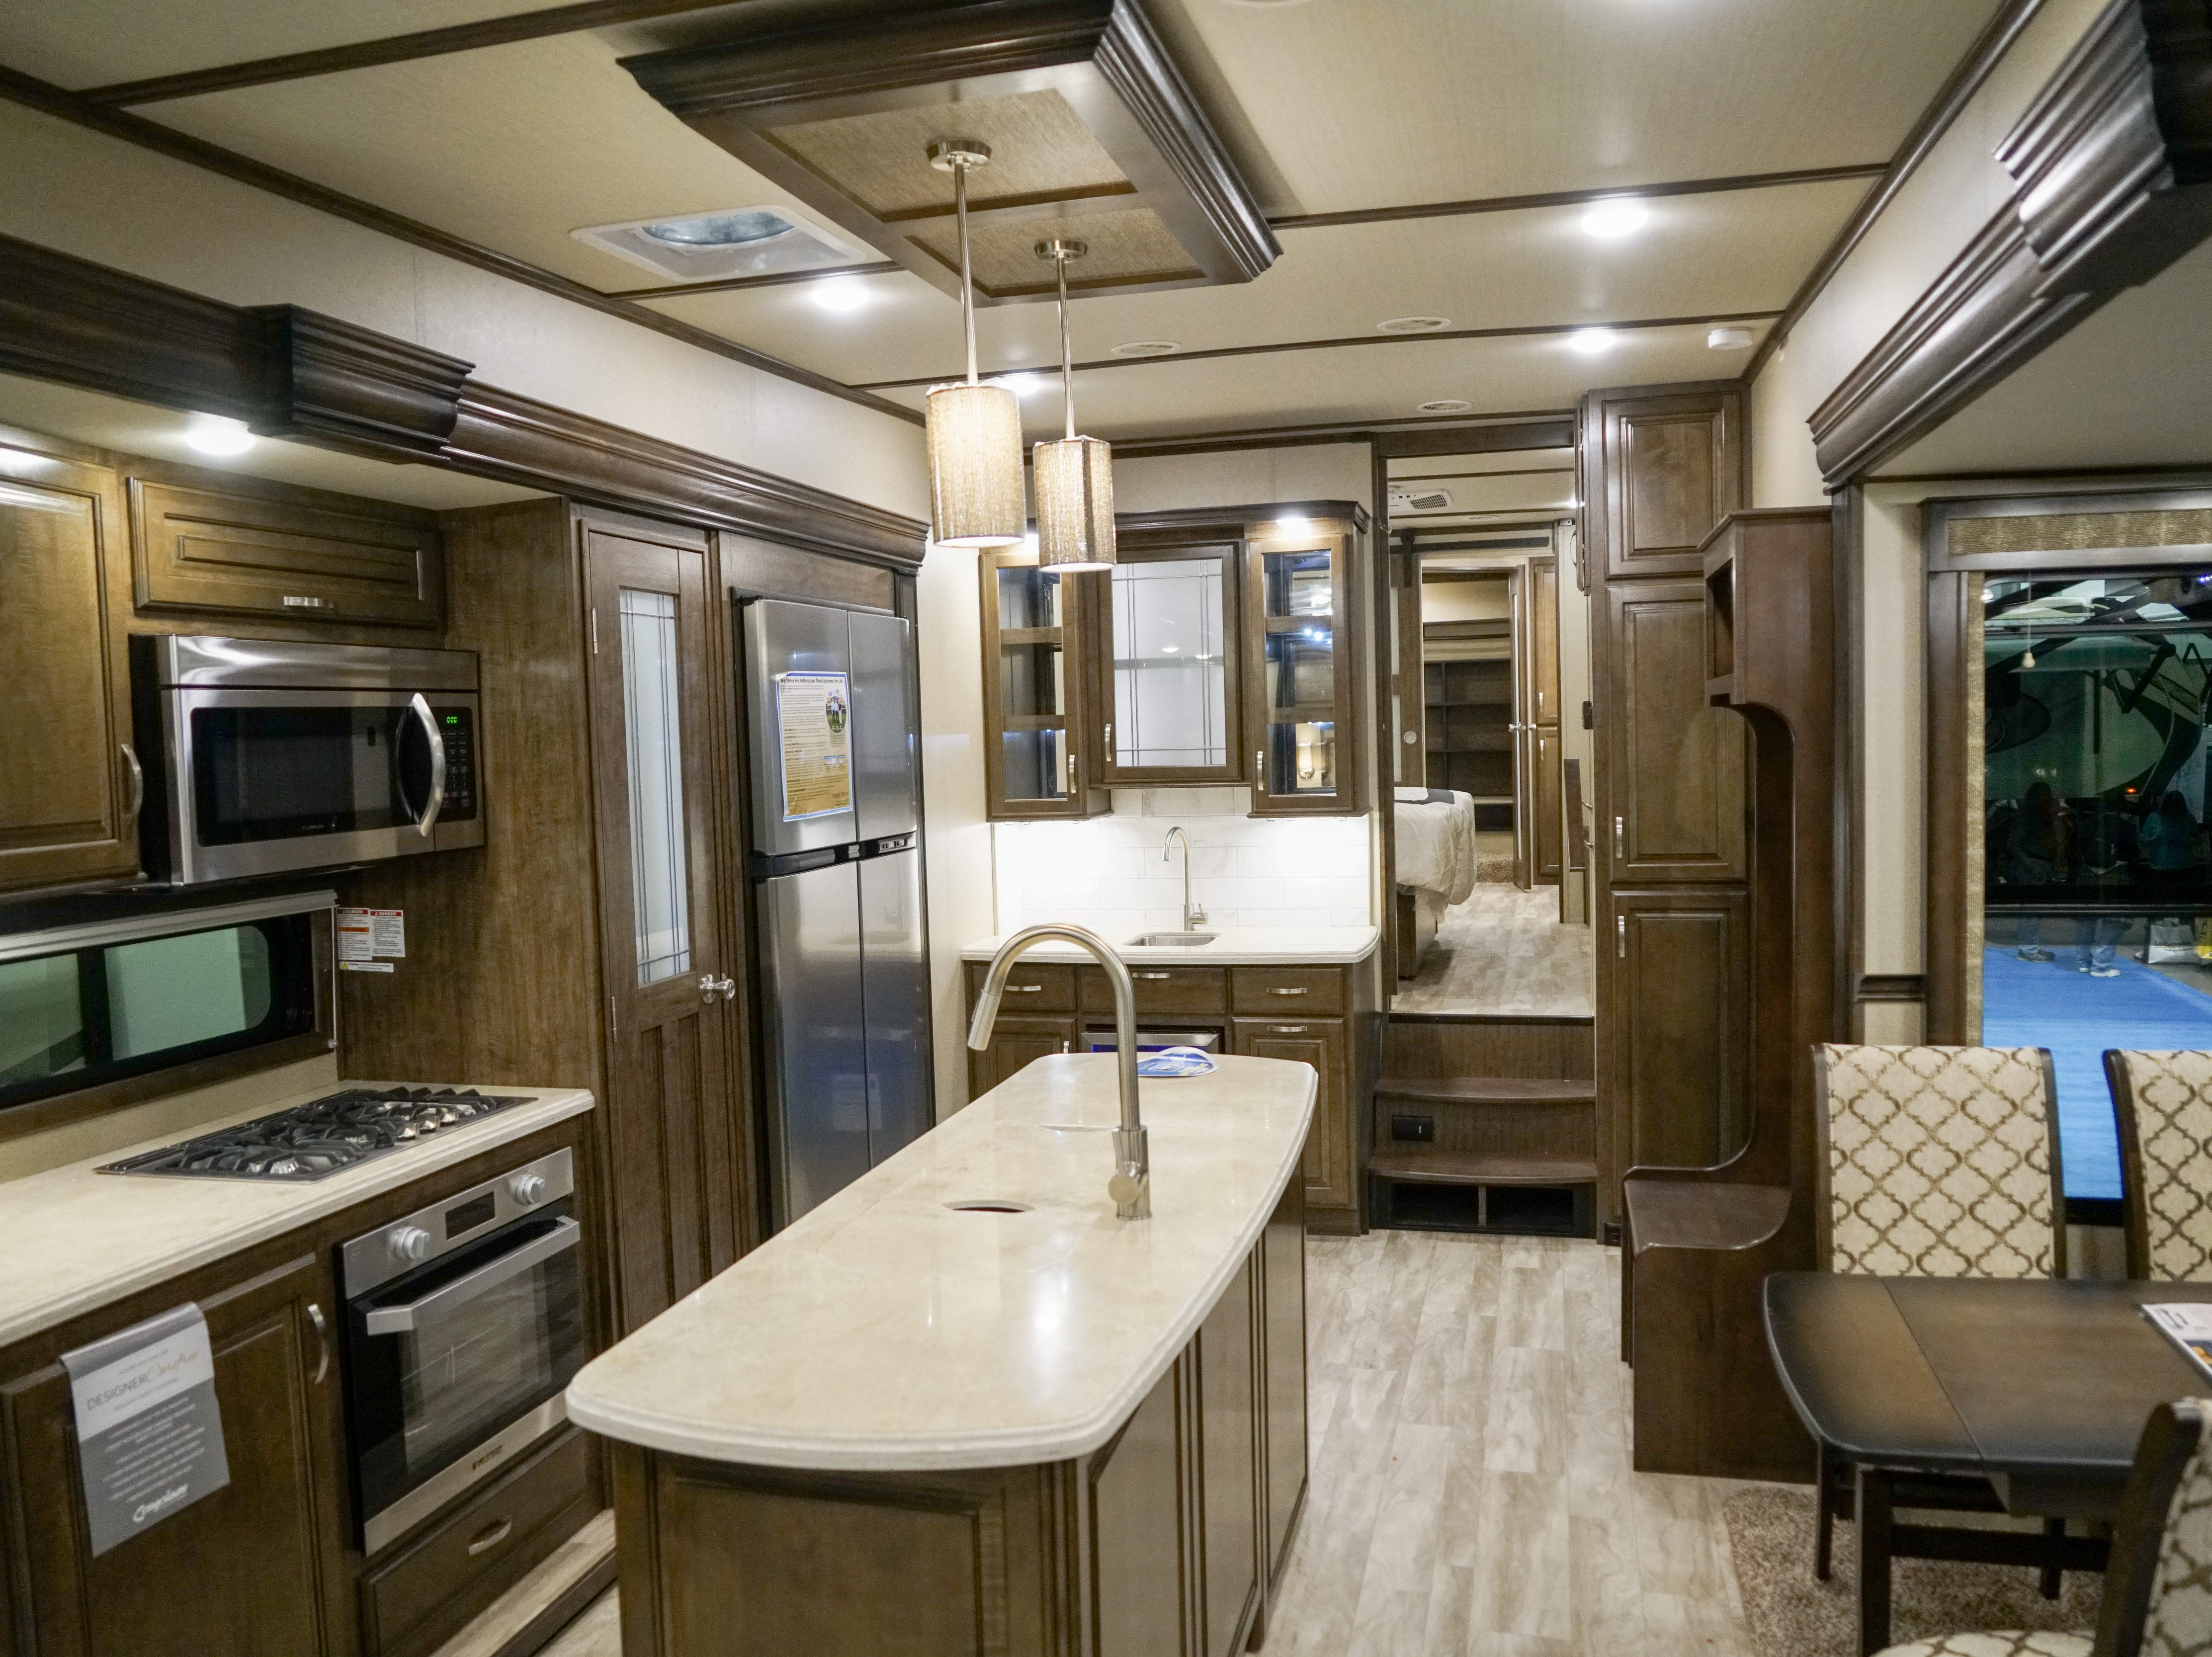 Many luxury RVs feature fittings and finishes usually found in high-end homes.